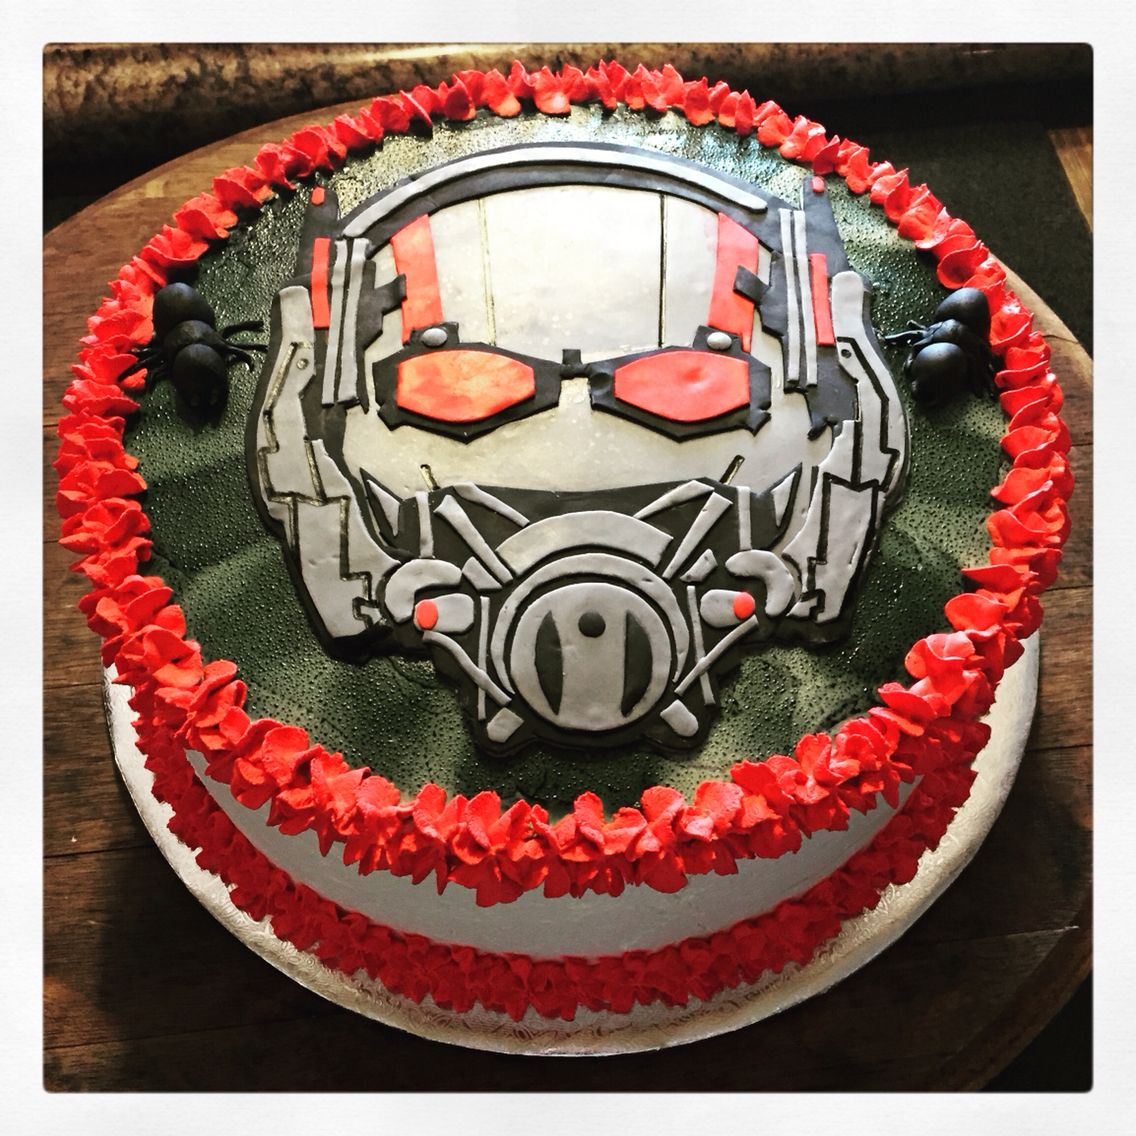 Ant Man Cake Chocolate Vanilla Marble and chocolate fudge filling